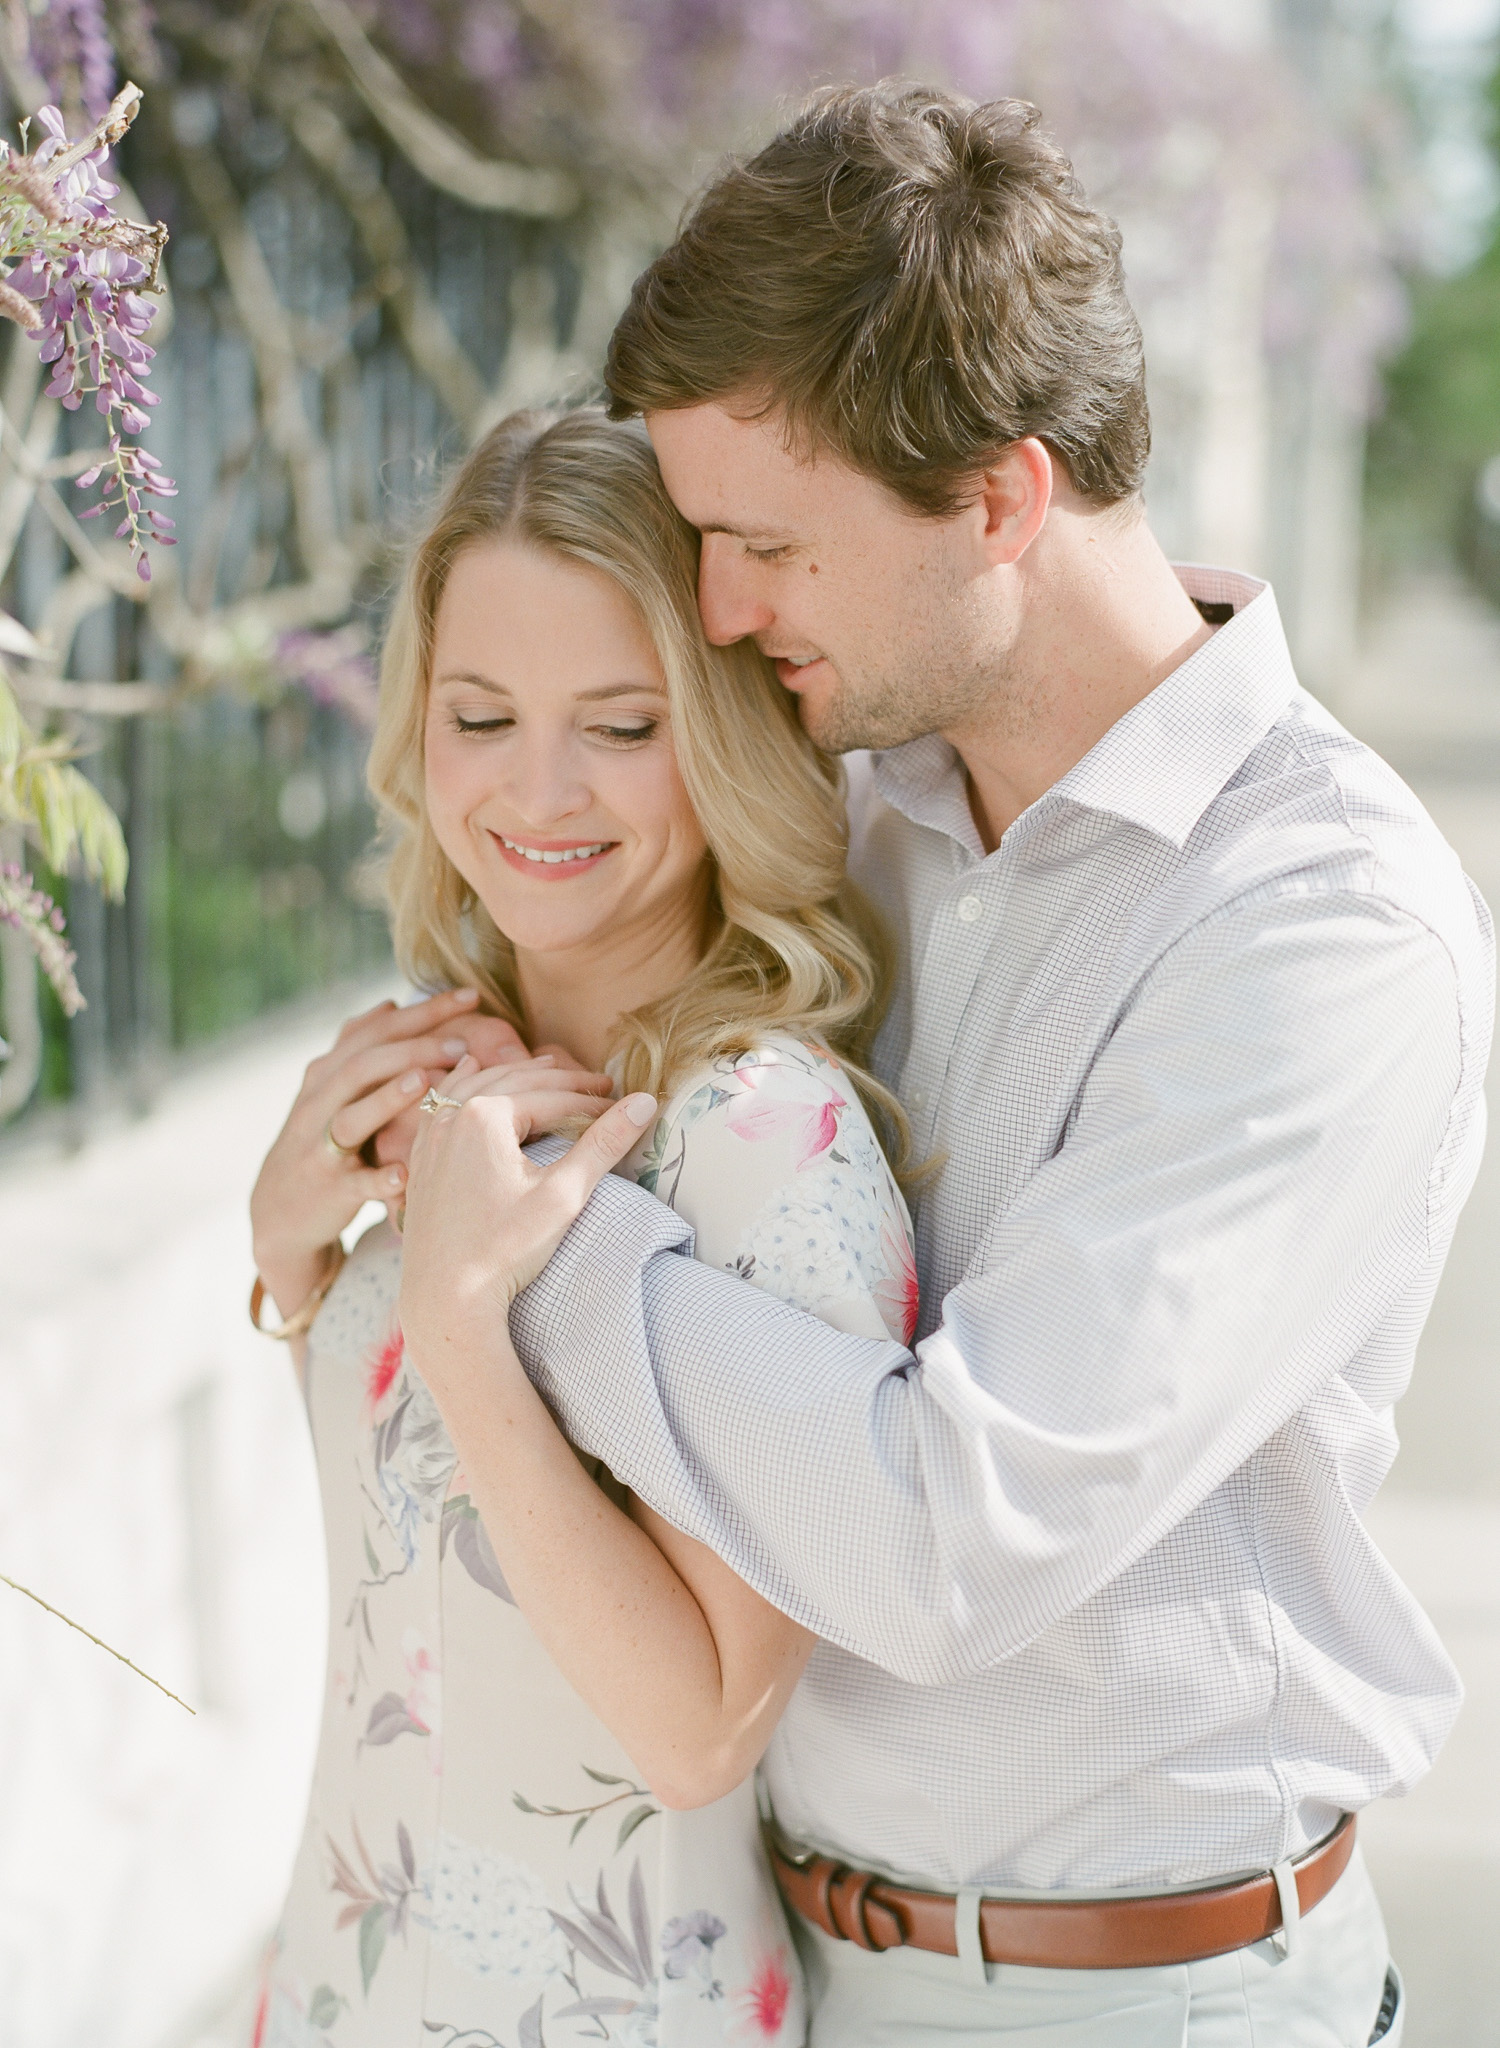 Charleston-Engagement-Session-Photos-7.jpg